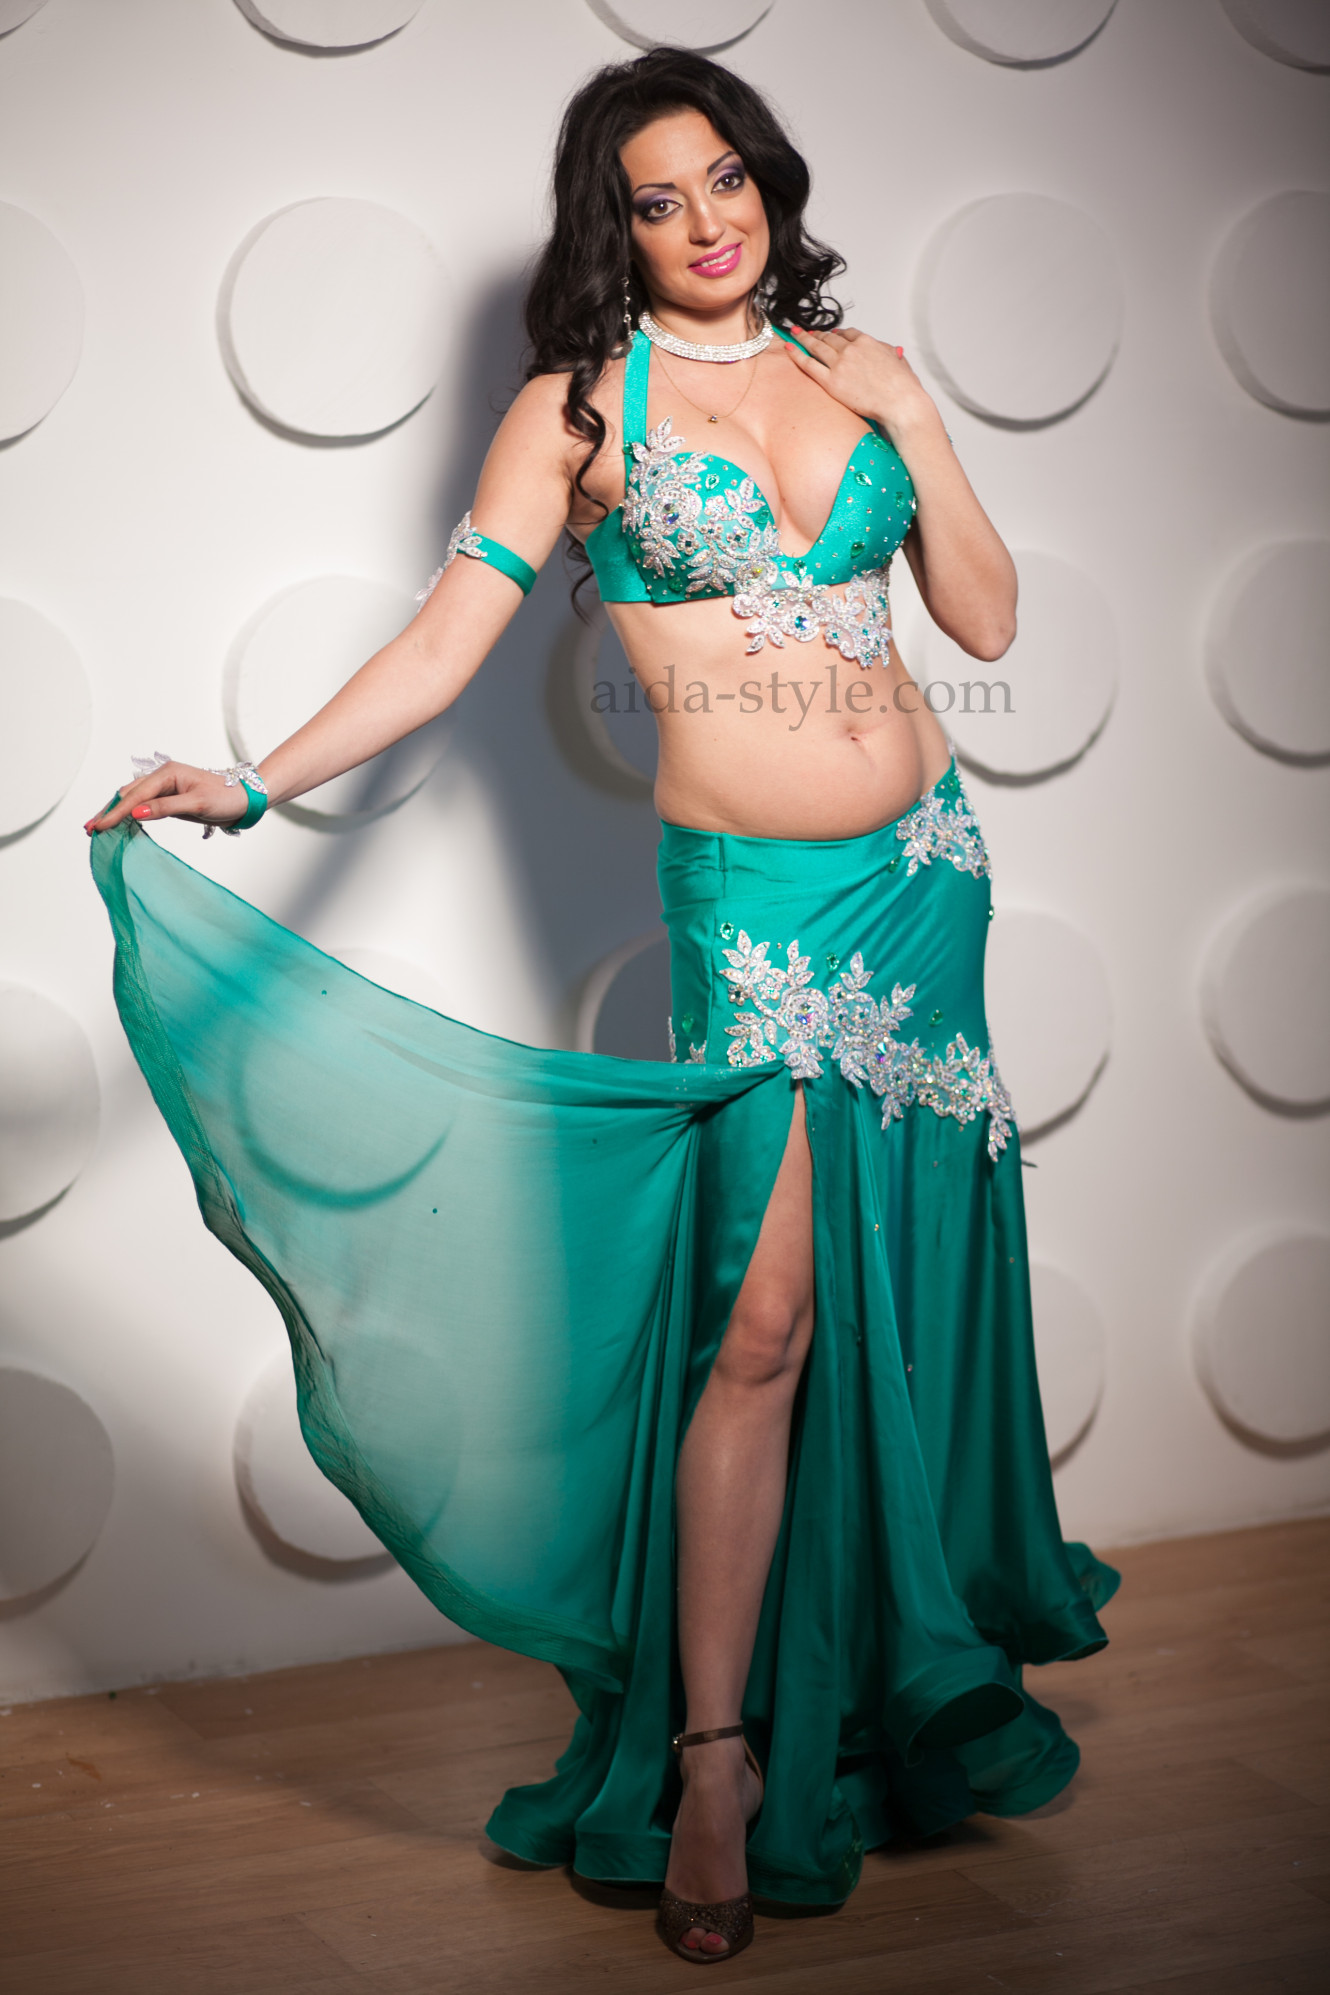 Blue professional belly dance costume with white decorations